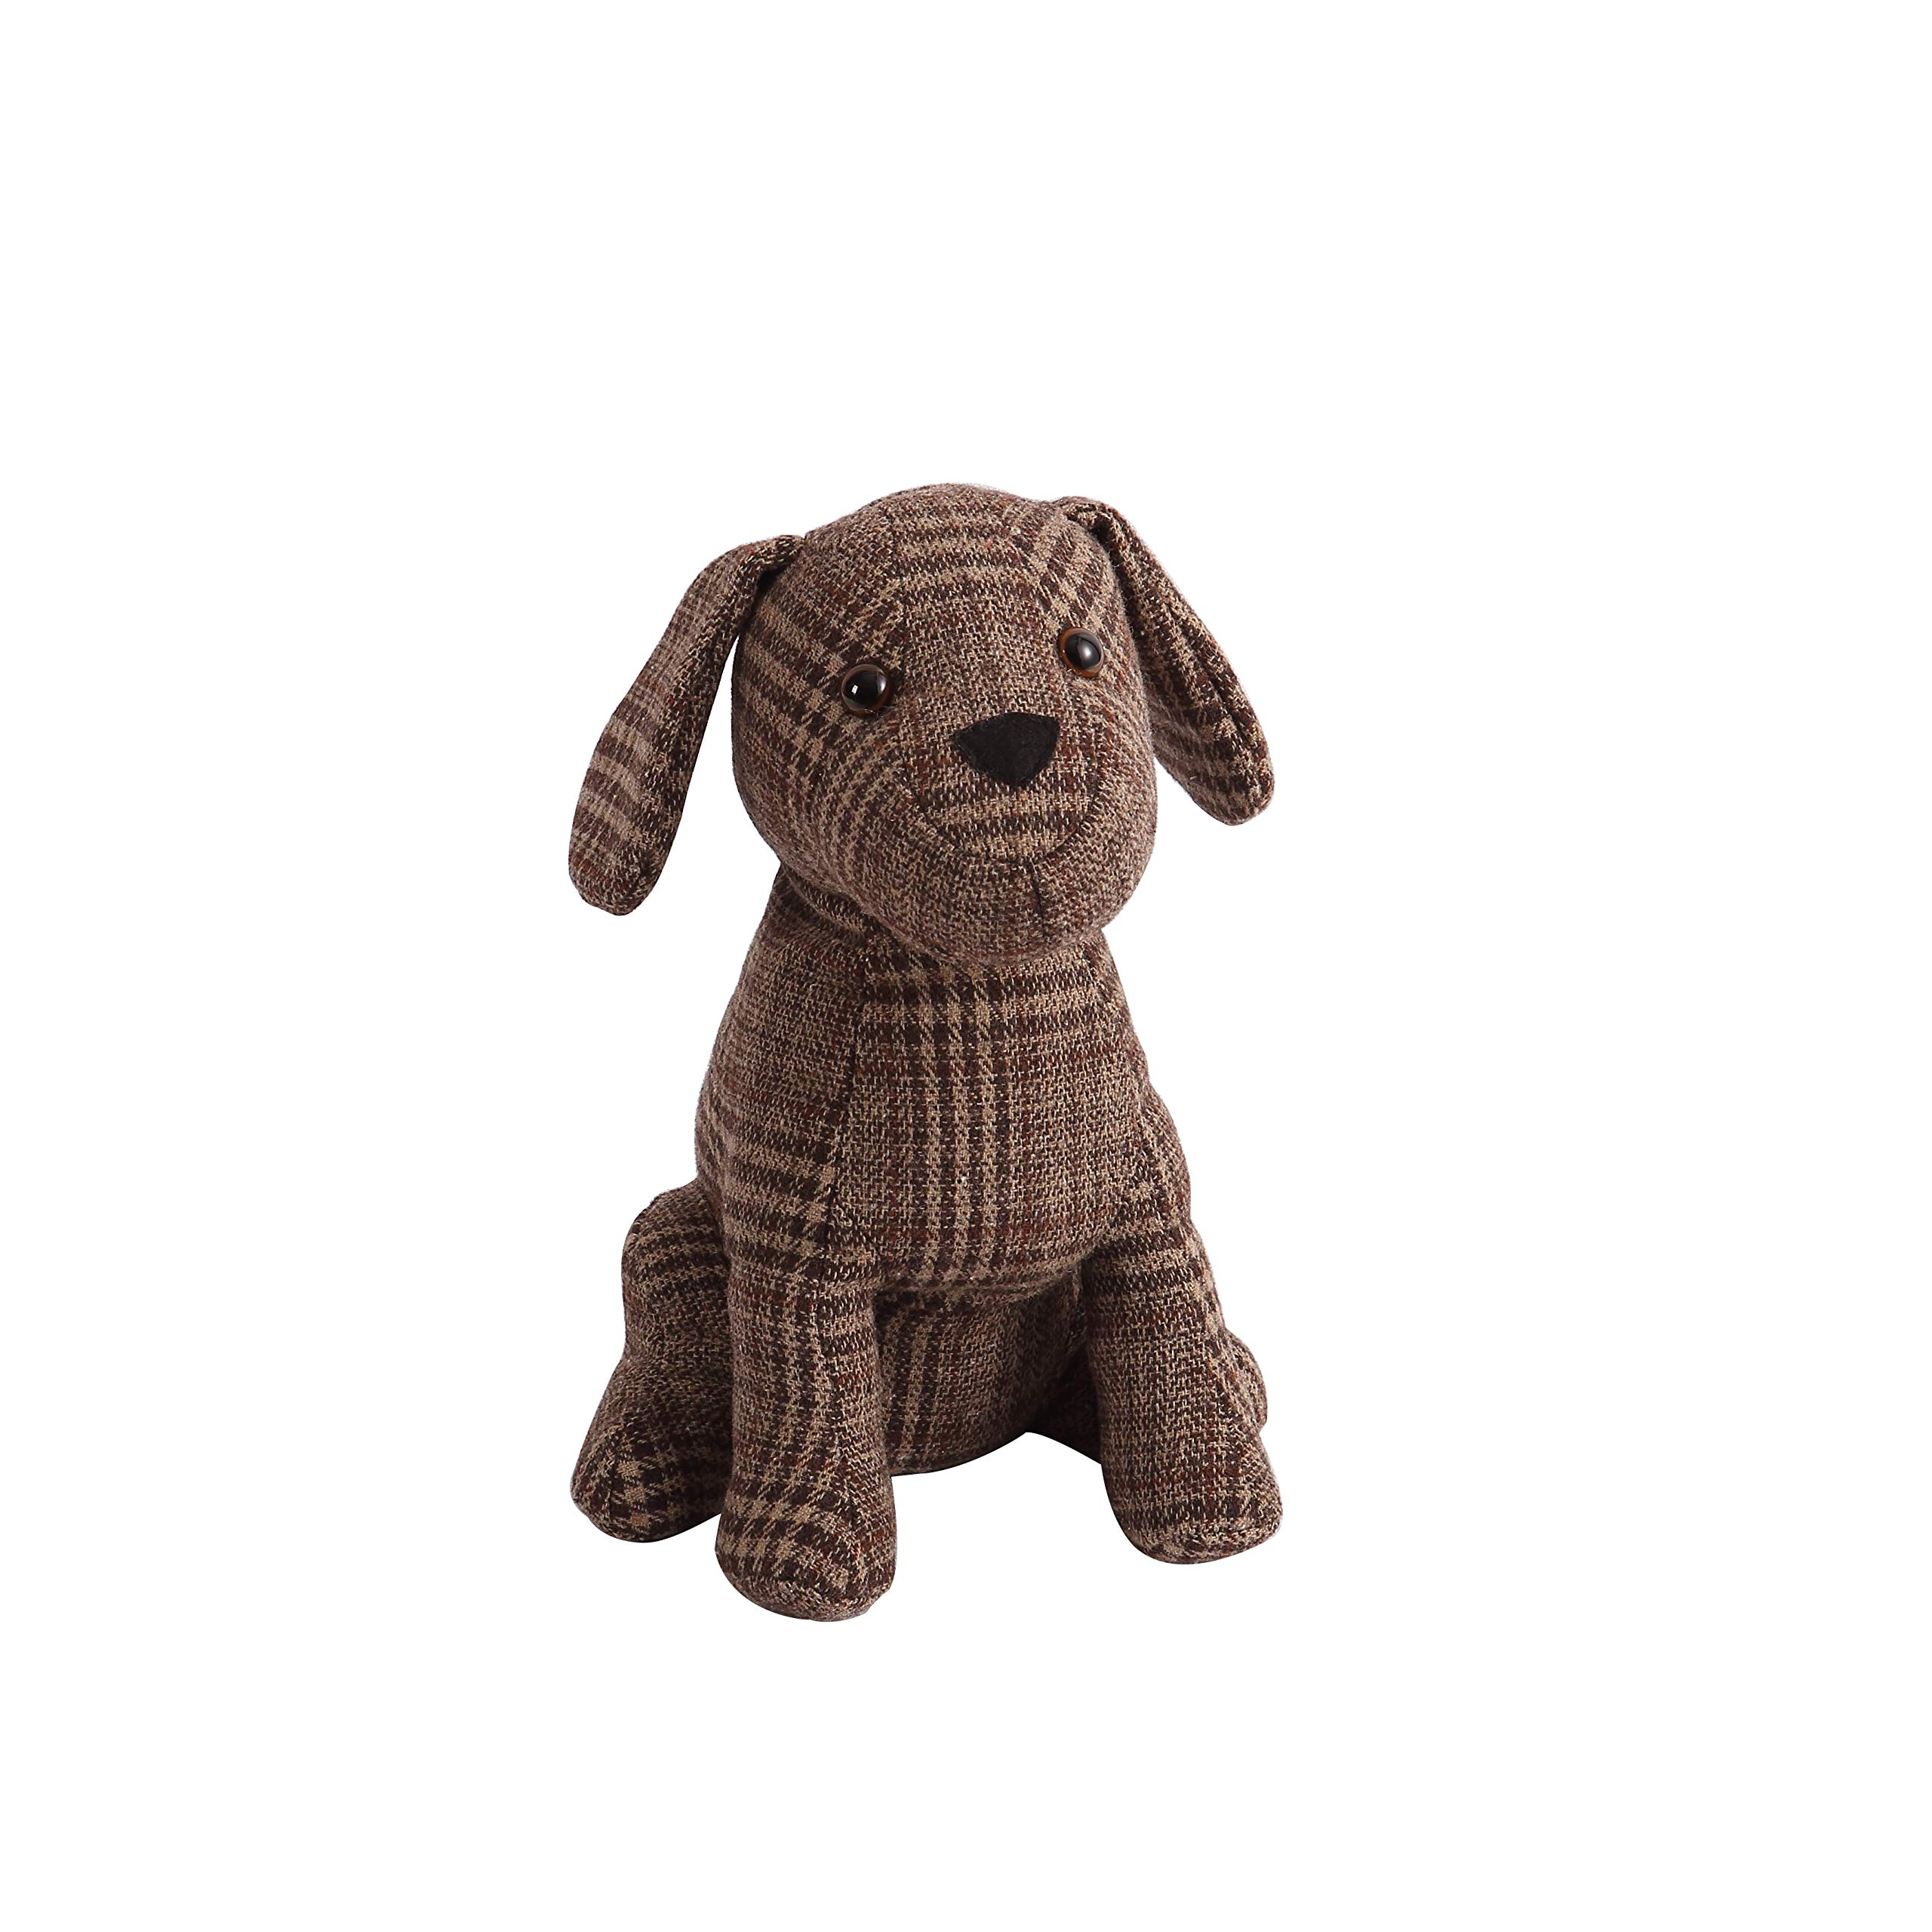 Decorative Door Stopper by Morgan Home – Available in Many Adorable Animals and Styles – Durable, Subtle Home Decor Easily Matches Measures Approx. 11 x 5.5 x 5.5 Inches (Brown Dog)